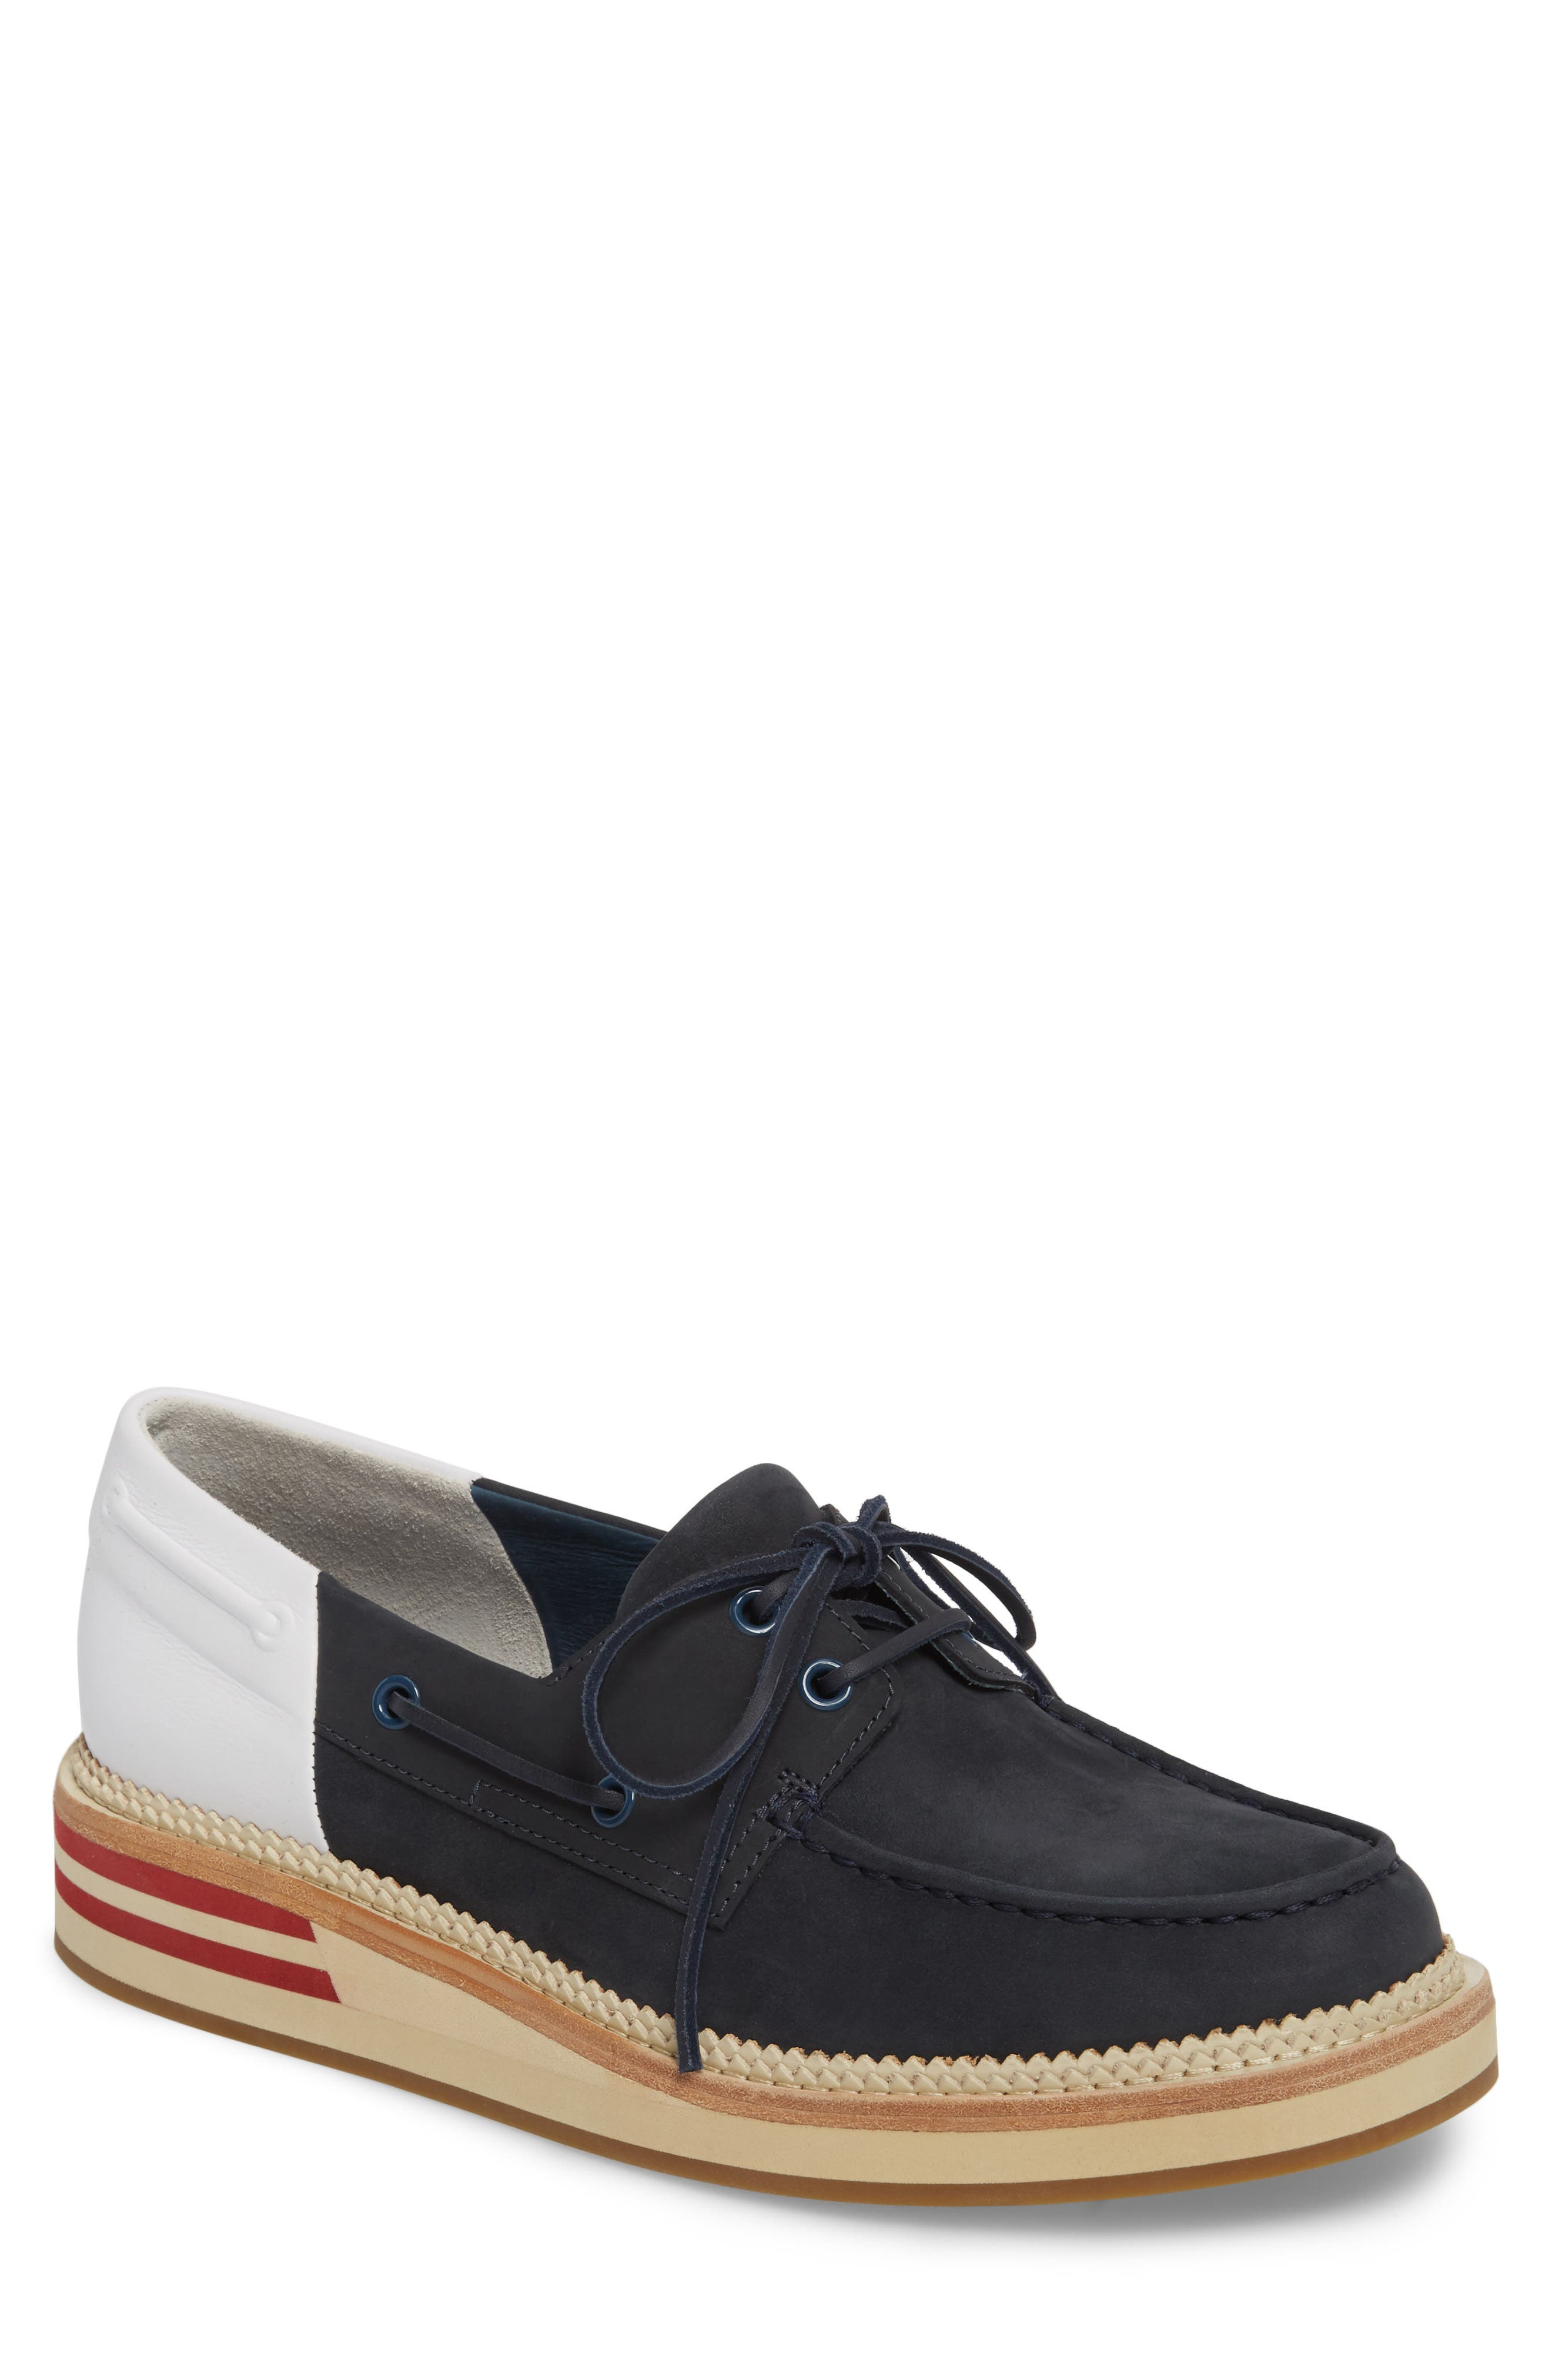 Cloud Colorblocked Boat Shoe,                         Main,                         color, 400